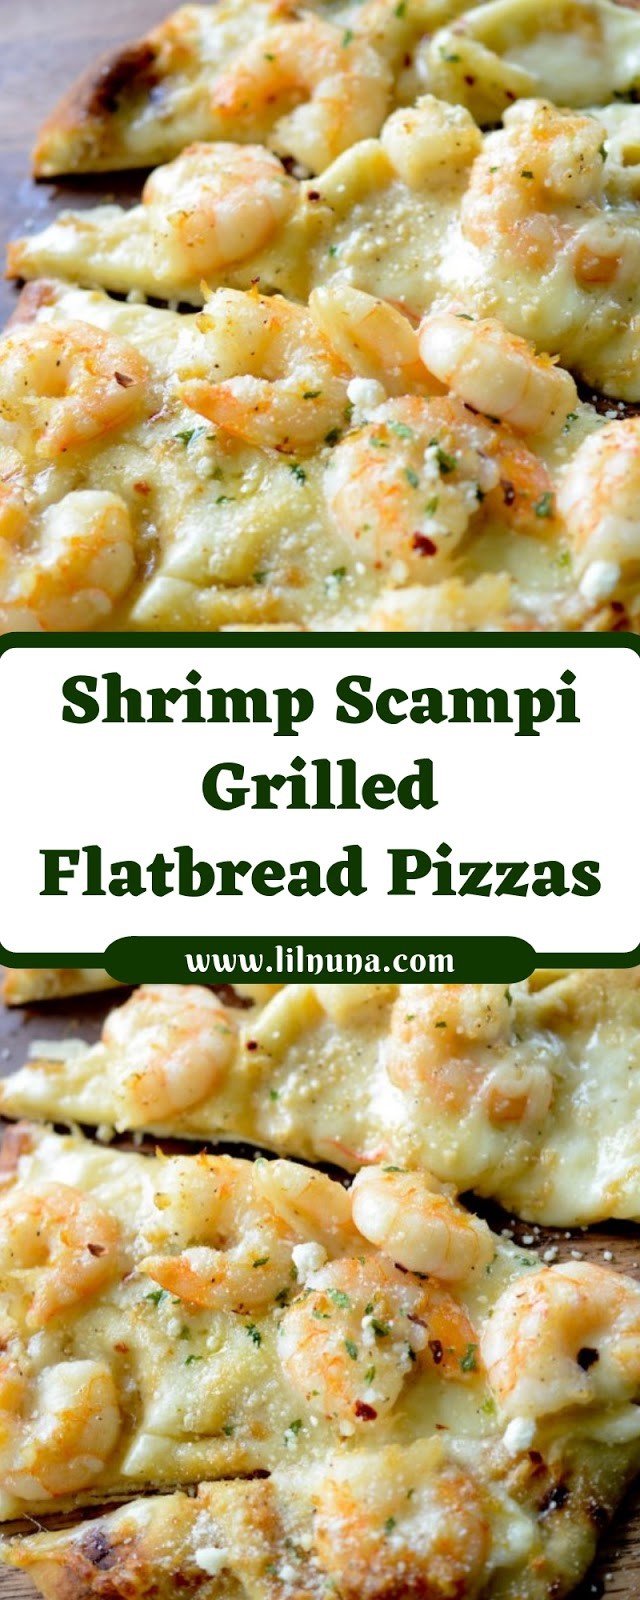 Shrimp Scampi Grilled Flatbread Pizzas